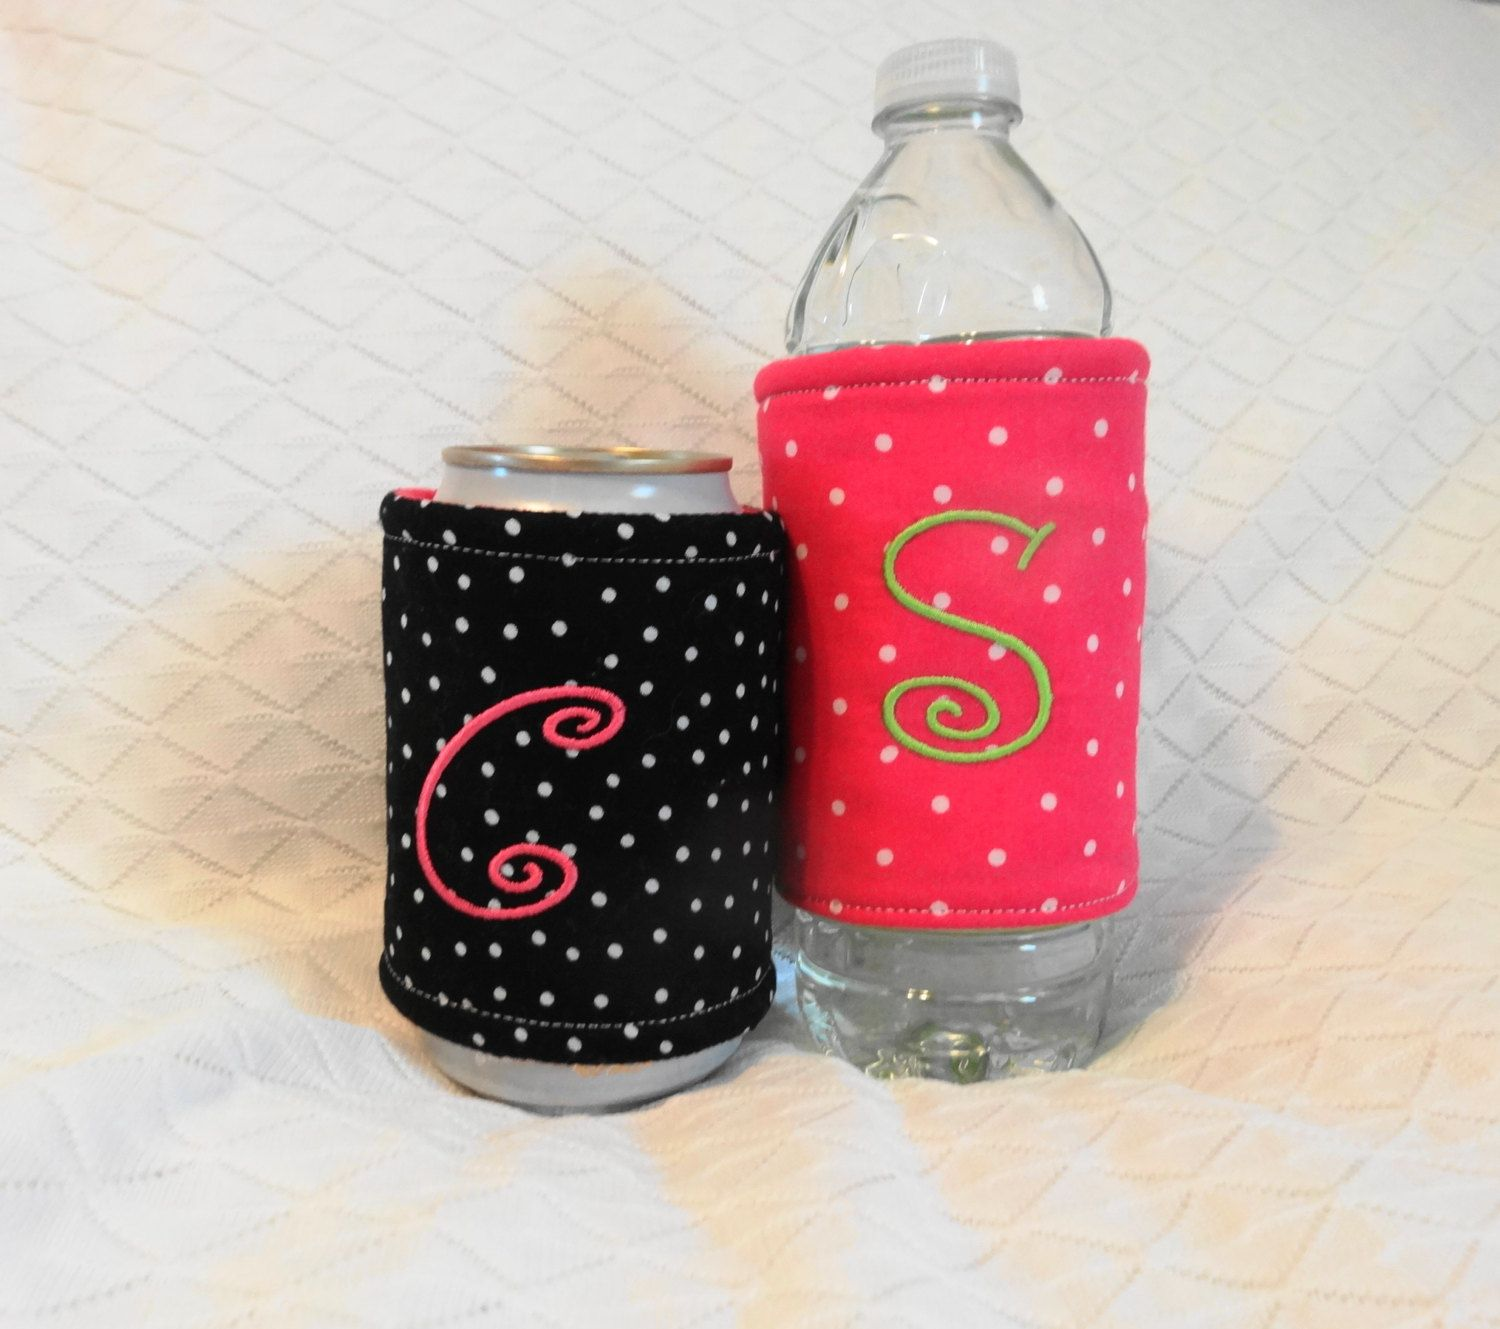 Personalized Can Koozie Can Cozy Custom Koozies Water Bottle Koozie Insulated Coozie Monogrammed Gift T Custom Koozies Water Bottle Koozie Monogram Gifts